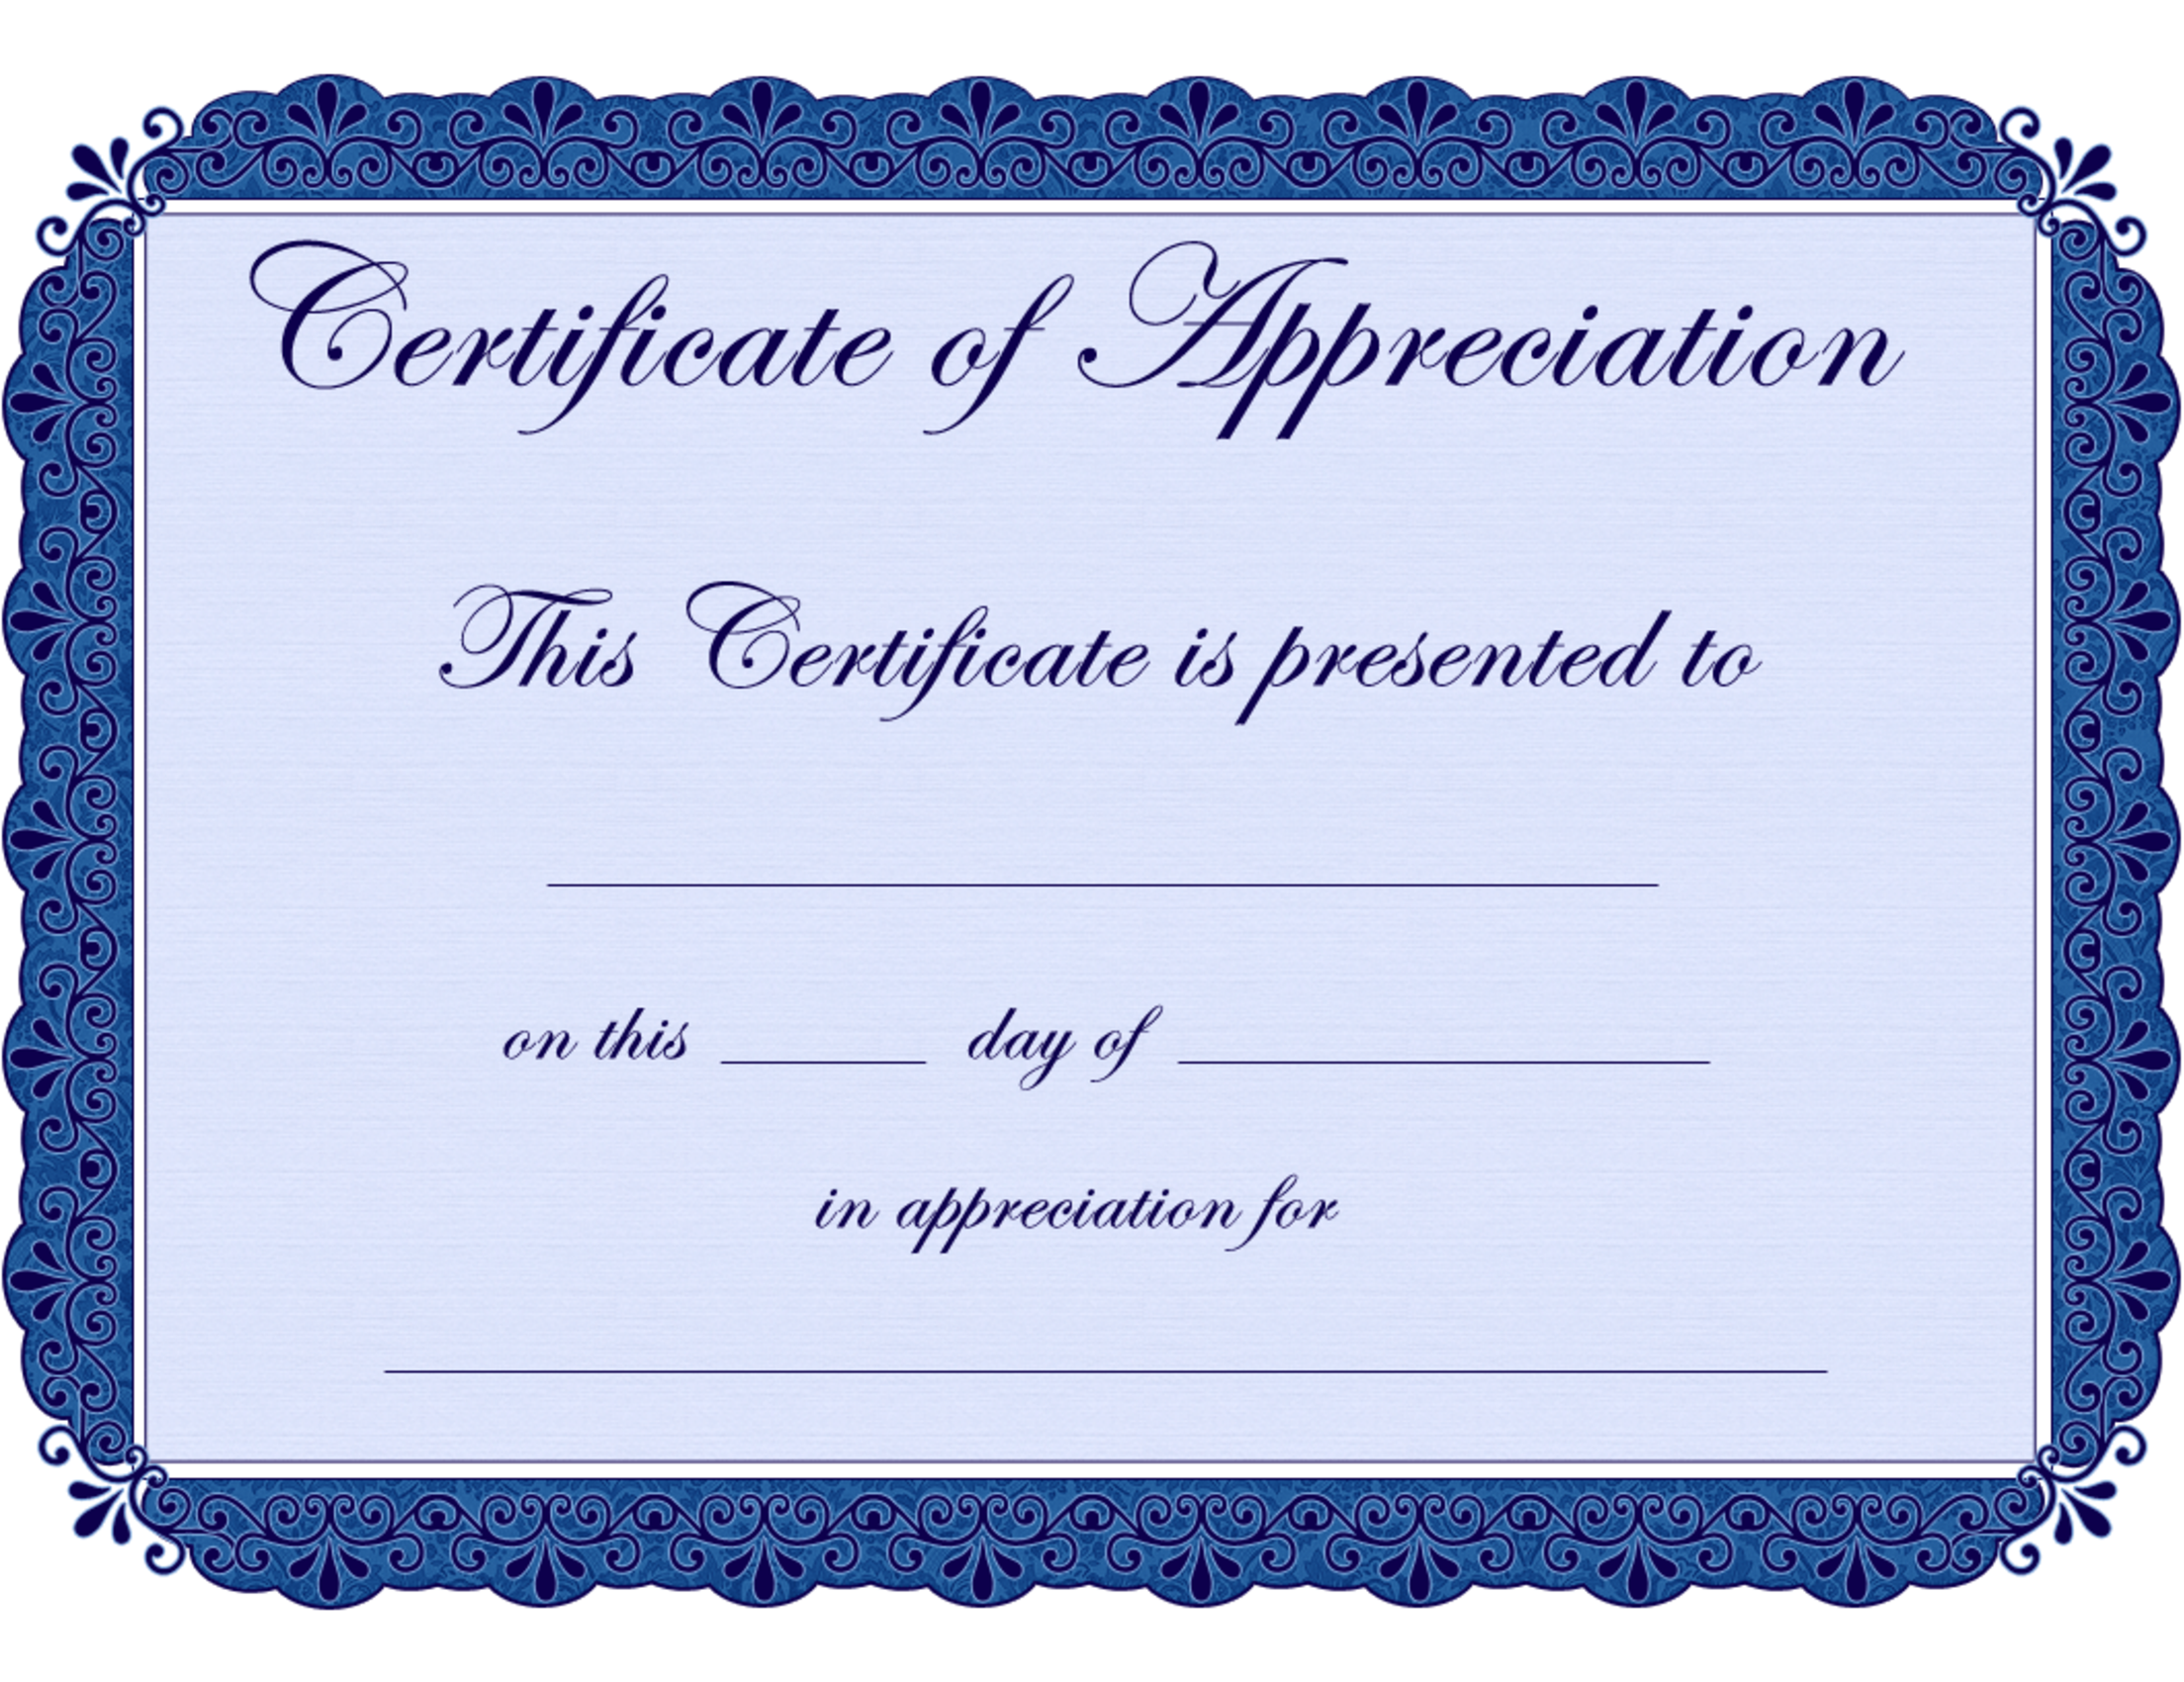 Certificate Of Appreciation | Pinterest | Free Printable Certificates,  Printable Certu2026  Free Blank Printable Certificates